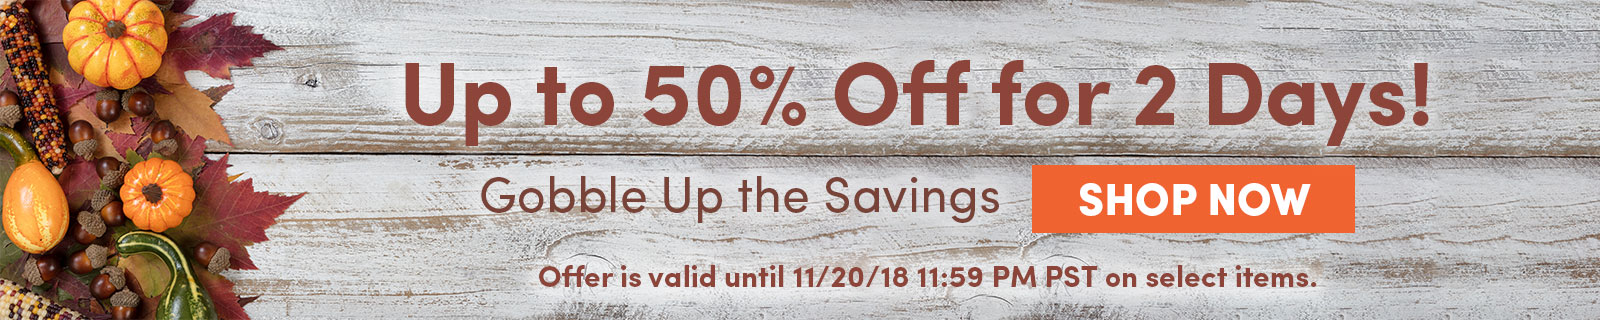 Up to 50% Off for 2 Days! Gobble Up the Savings SHOP NOW